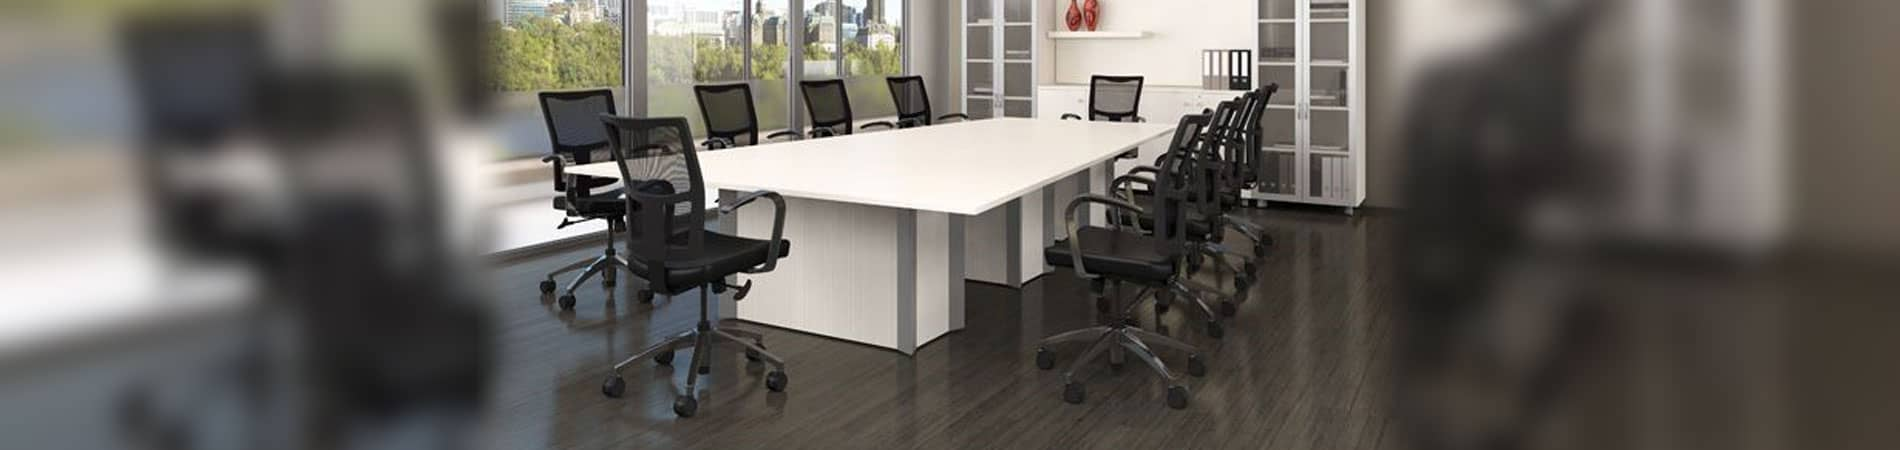 Used Office Furniture Fort Lauderdale Image For Impressive Used Office Furniture Fort